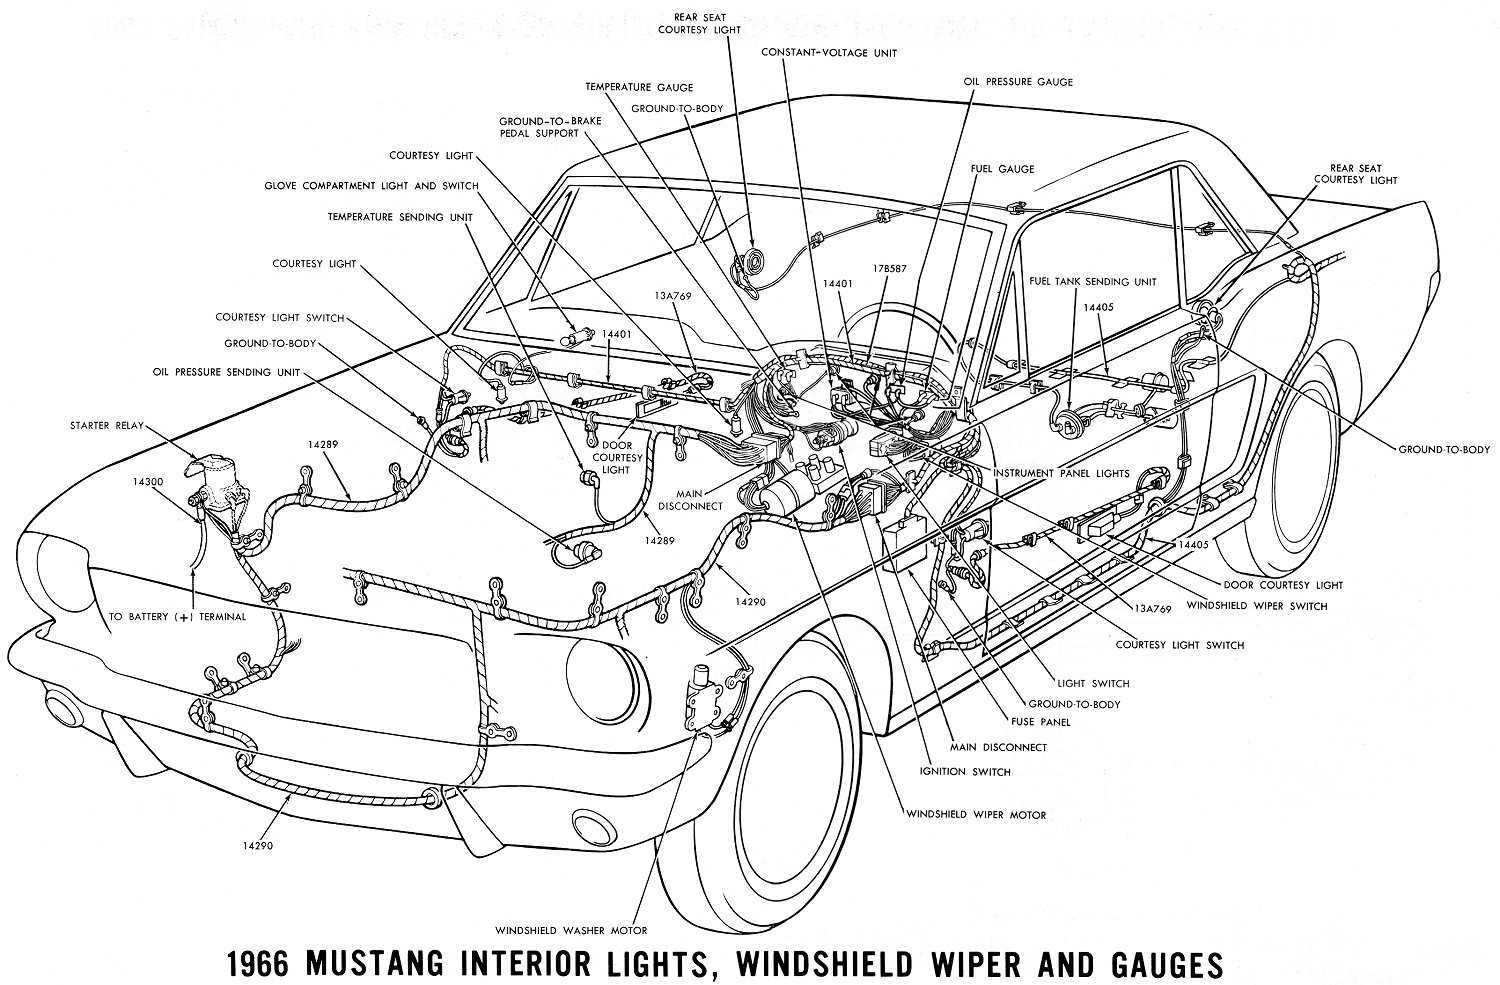 1966 Mustang Wiring Diagrams Average Joe Restoration Well Control Panel Schematics On Diagram Interior Lights Windshield Wiper And Gauges Schematic